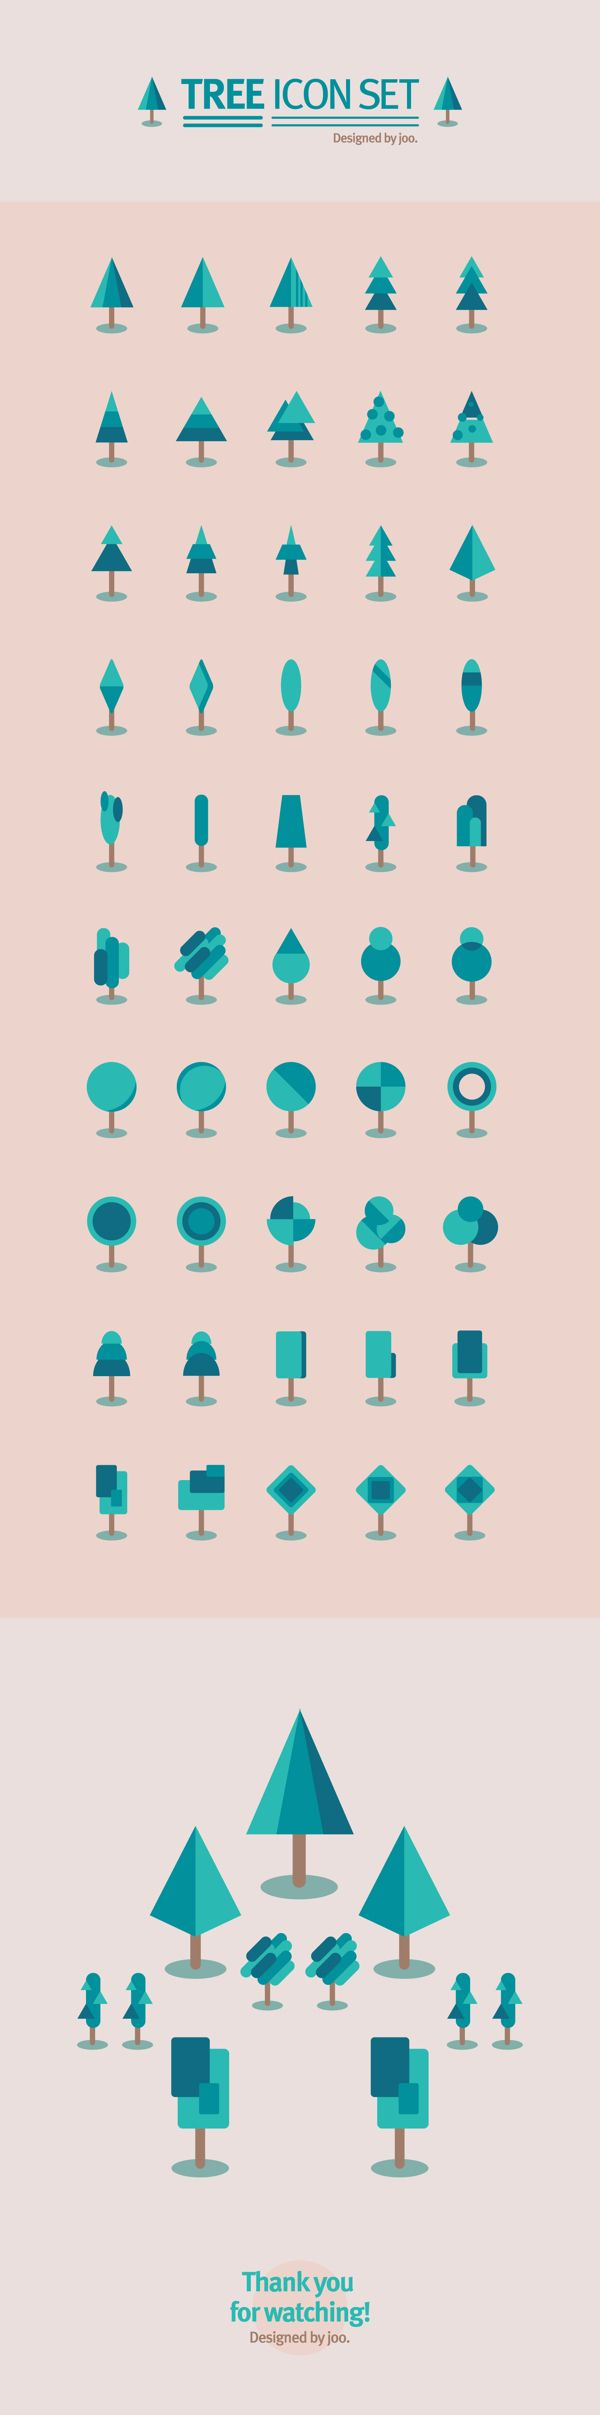 I love this! Here we have one idea: a tree. But you have a few basic shapes that make up so many combinations. However, they all read the same way: a tree. A few small elements can become many different compositions. So many possibilities.